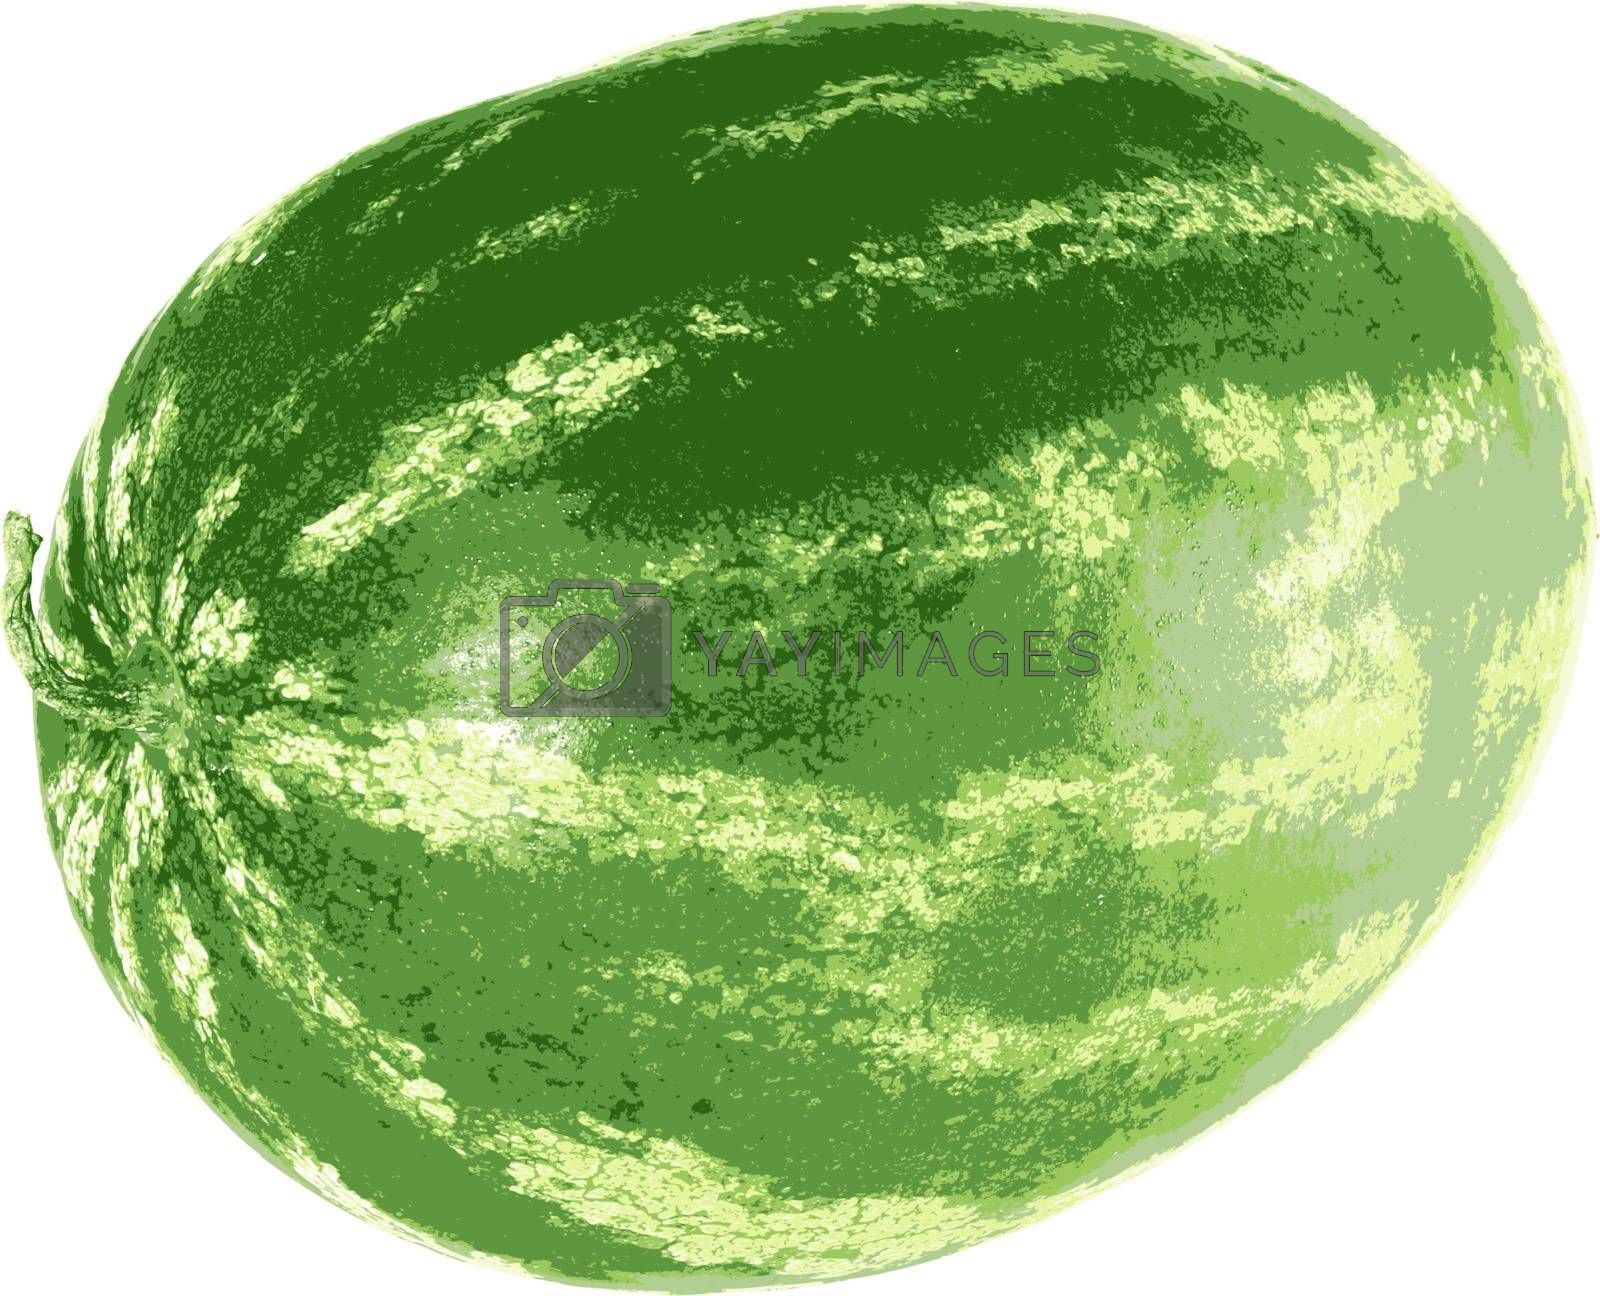 Ripe watermelon isolated on white background. Vector illustration.